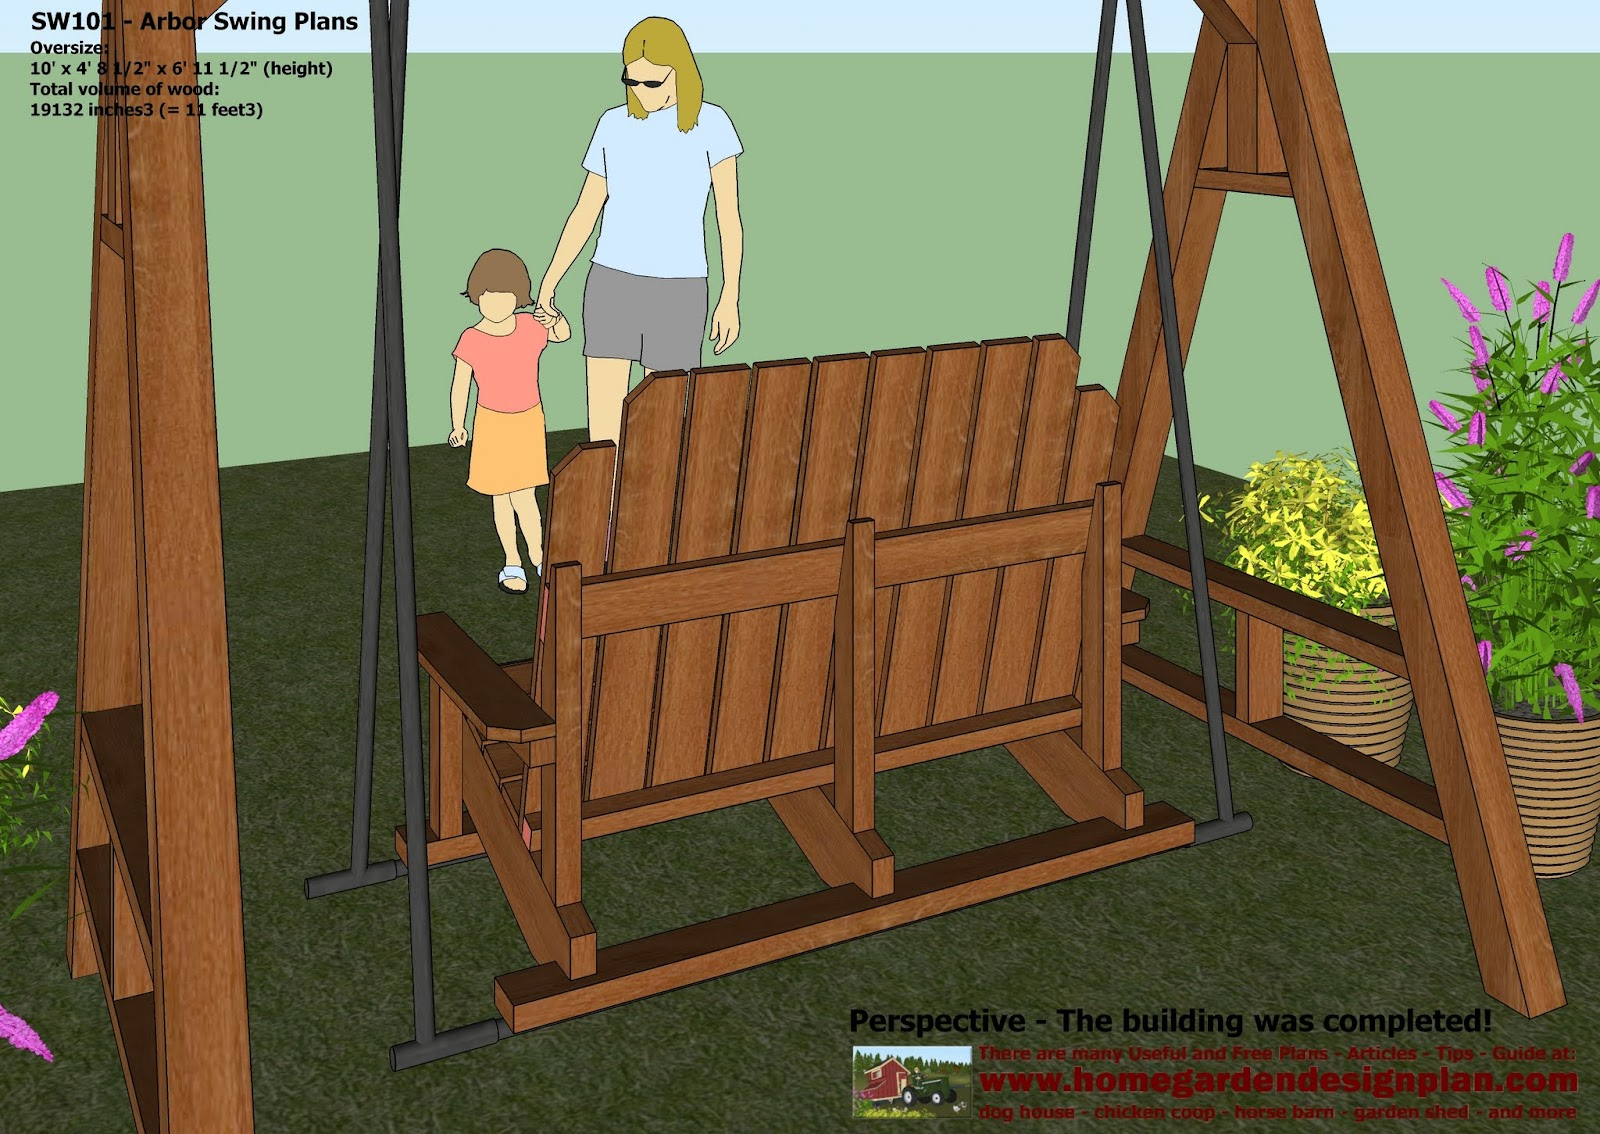 My Project Arbor Plans With Swing - garden swing designs